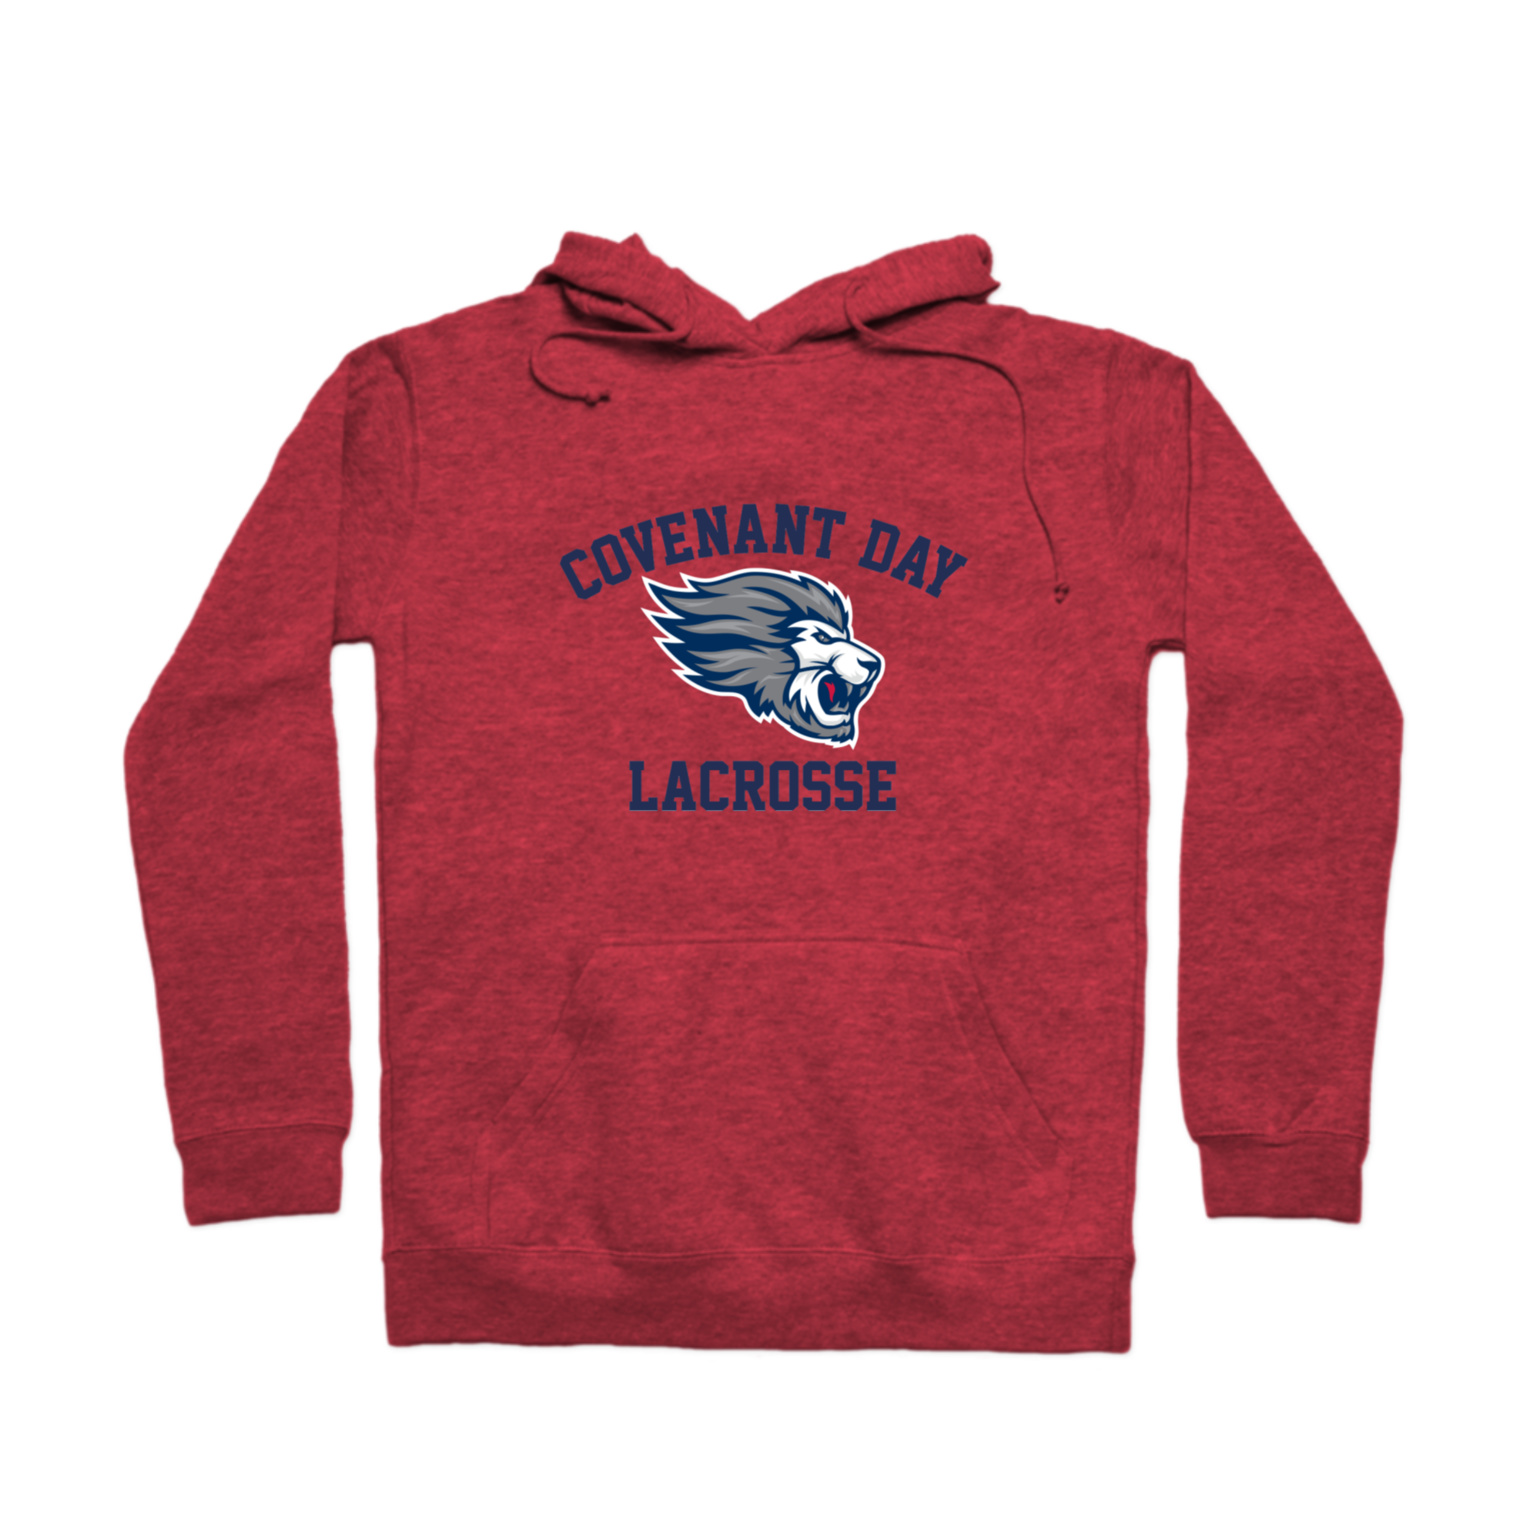 Covenant Day Lacrosse Pullover Hoodie